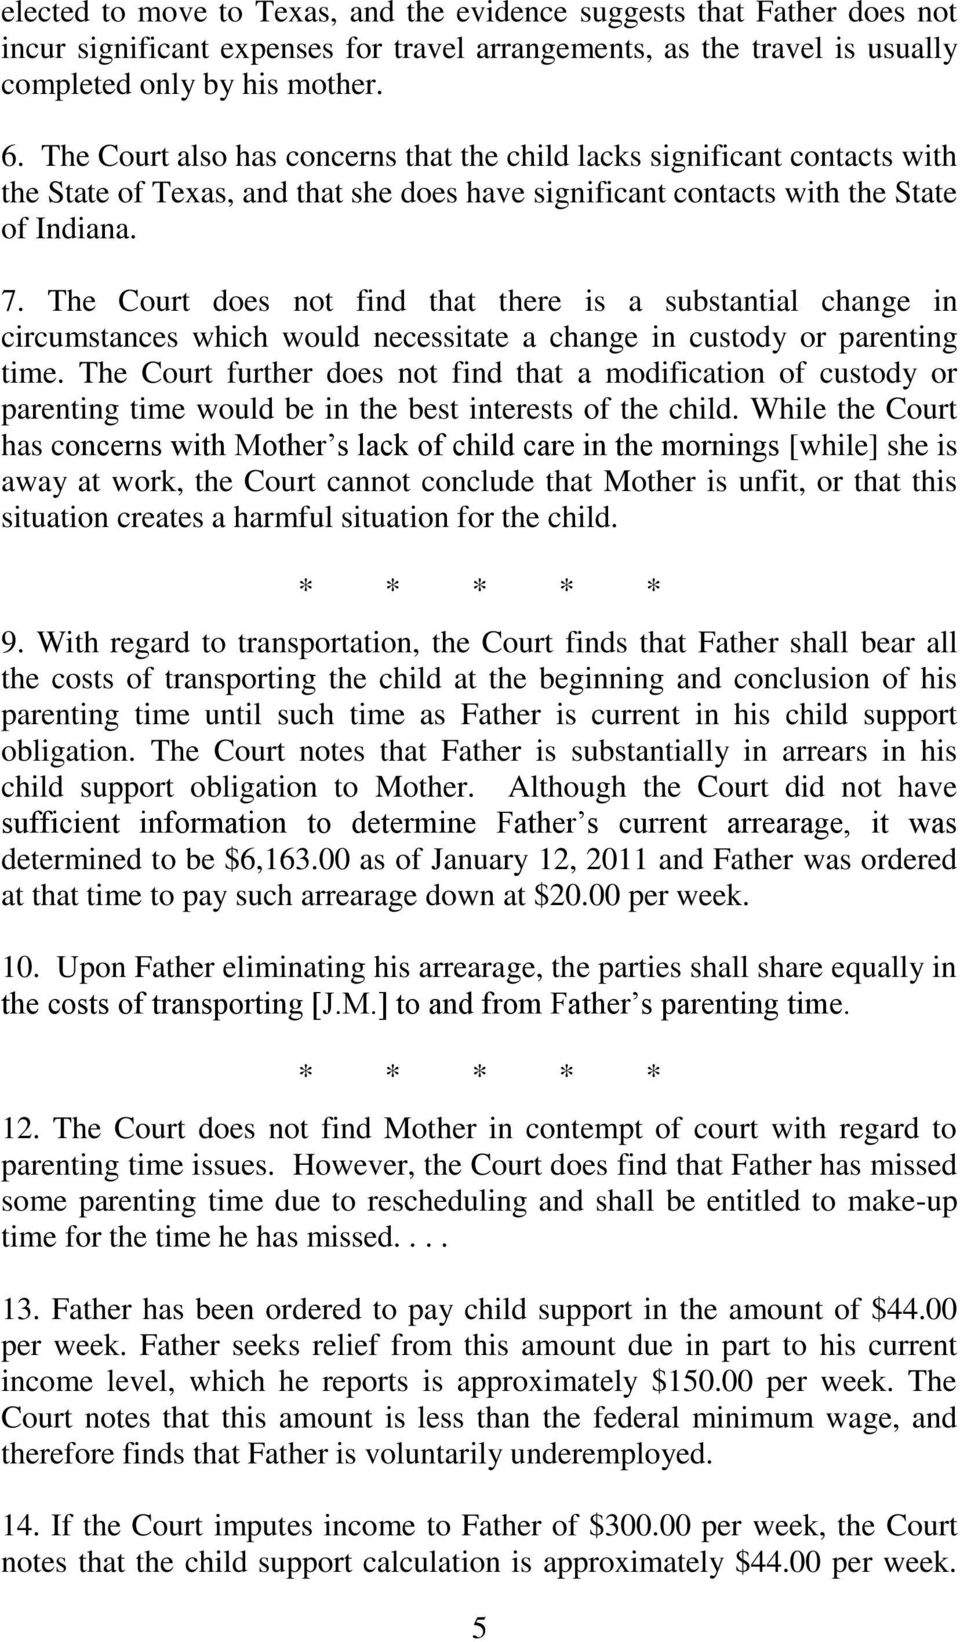 The Court does not find that there is a substantial change in circumstances which would necessitate a change in custody or parenting time.